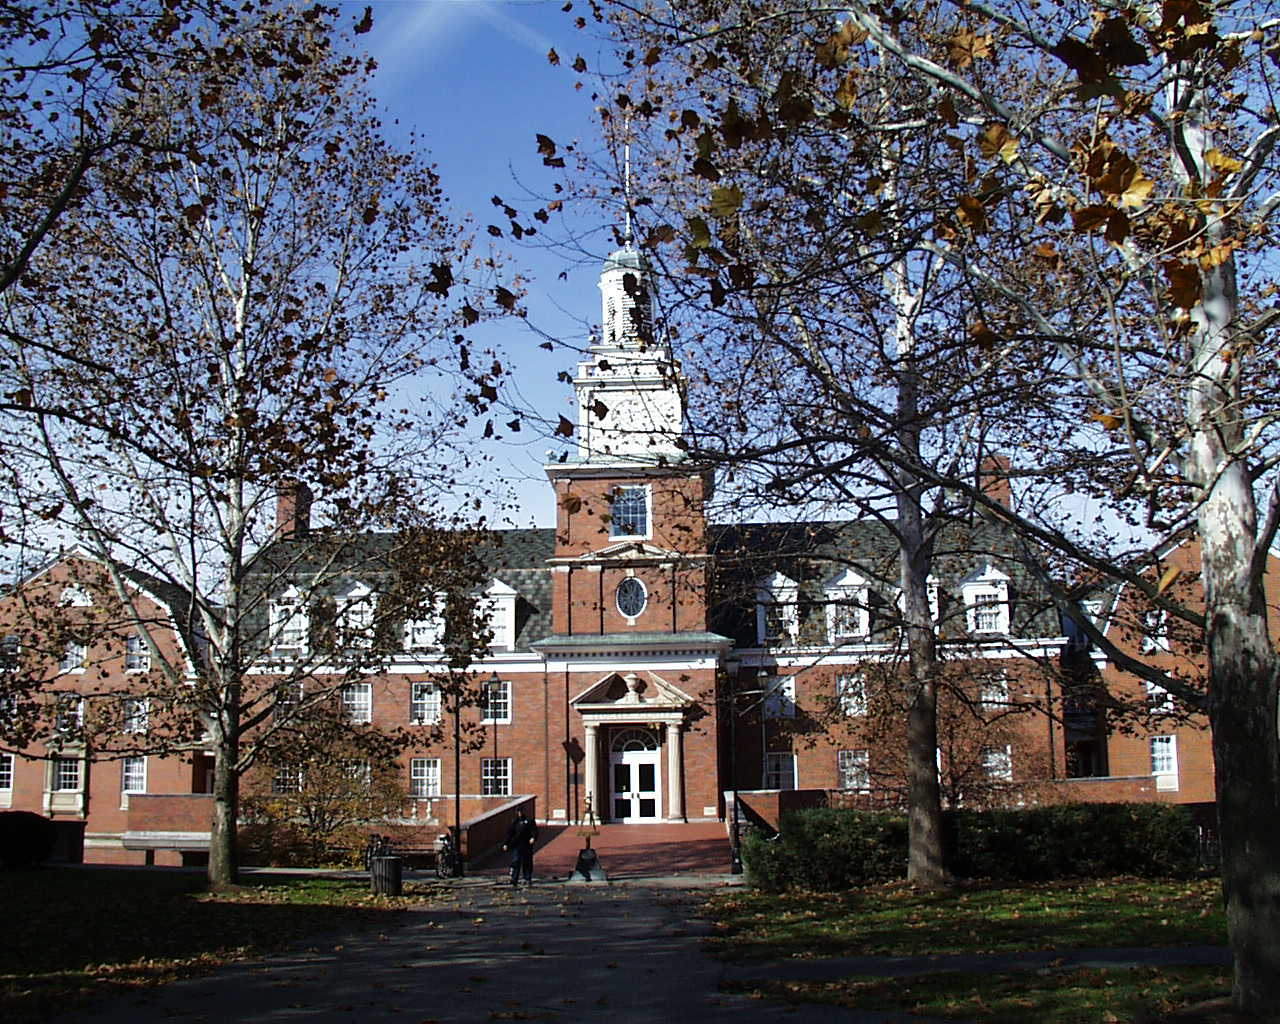 Stocker Center at Ohio University - Courtesy Ottawa80 via Wikimedia Commons